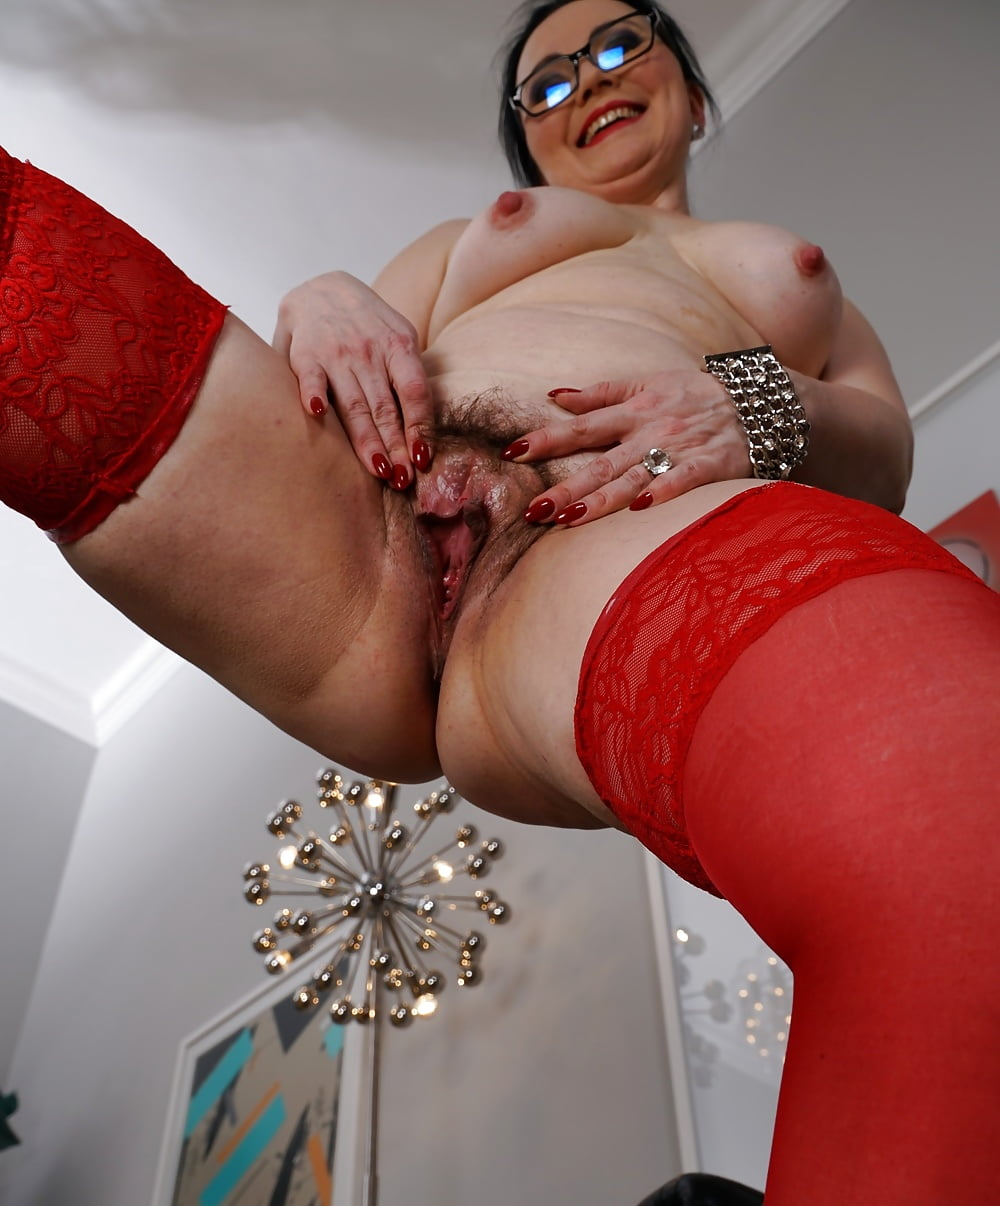 mature-woman-playing-with-herself